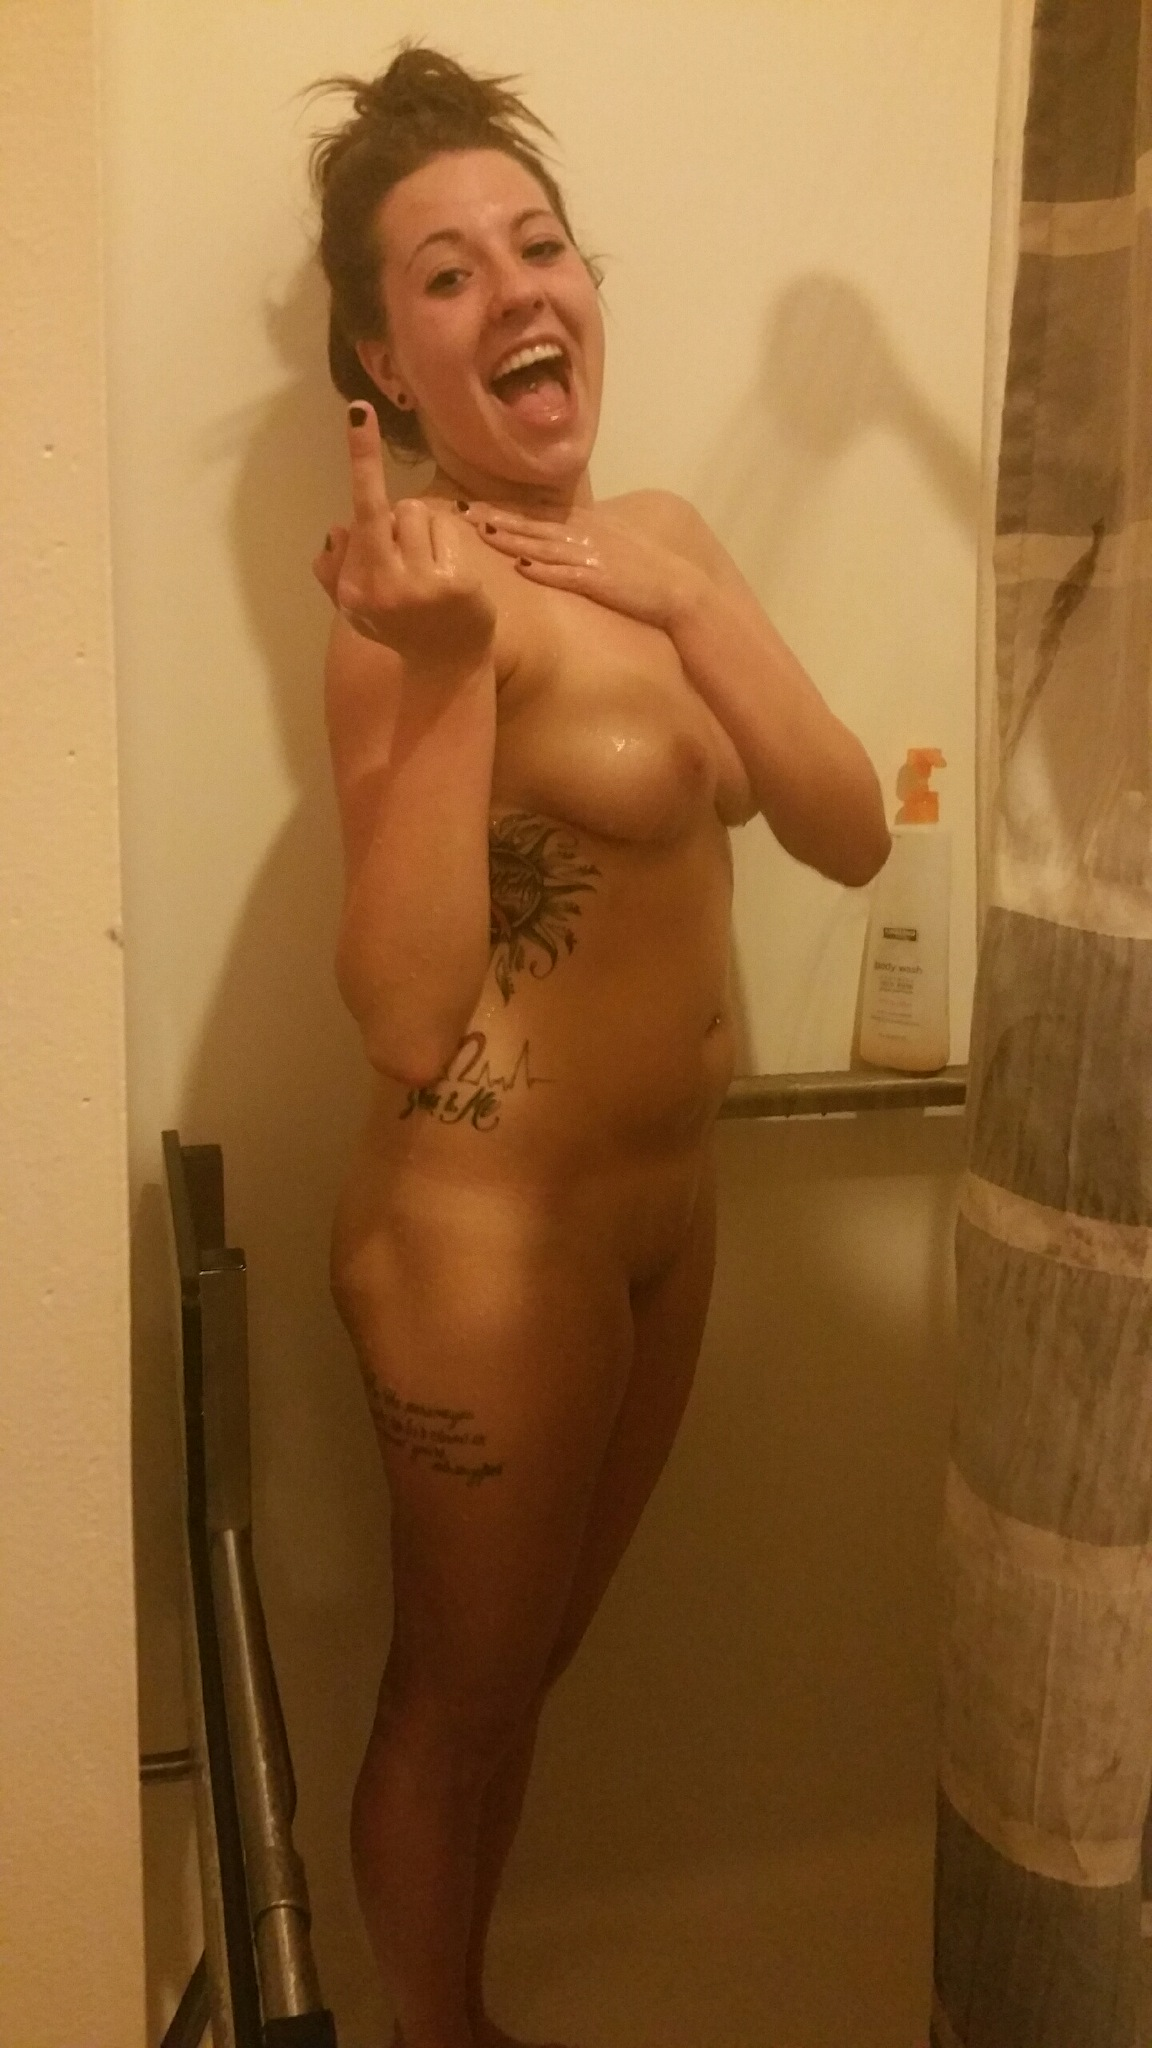 sounds tempting the missing rose ali rose nude agree with told